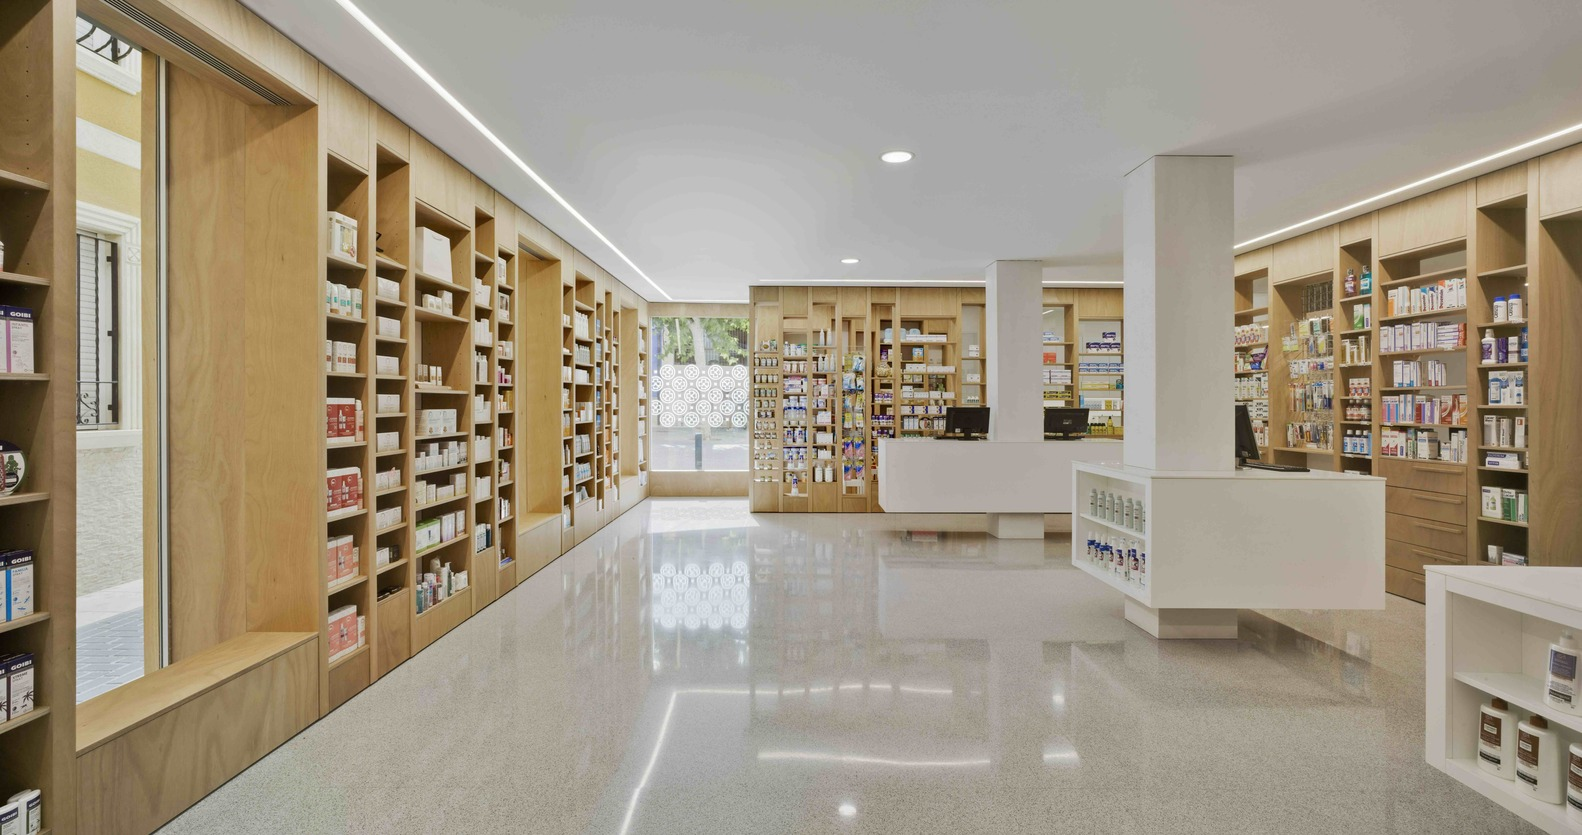 Marzua farmacia del reloj por eneseis arquitectura yes for Decoracion de farmacias